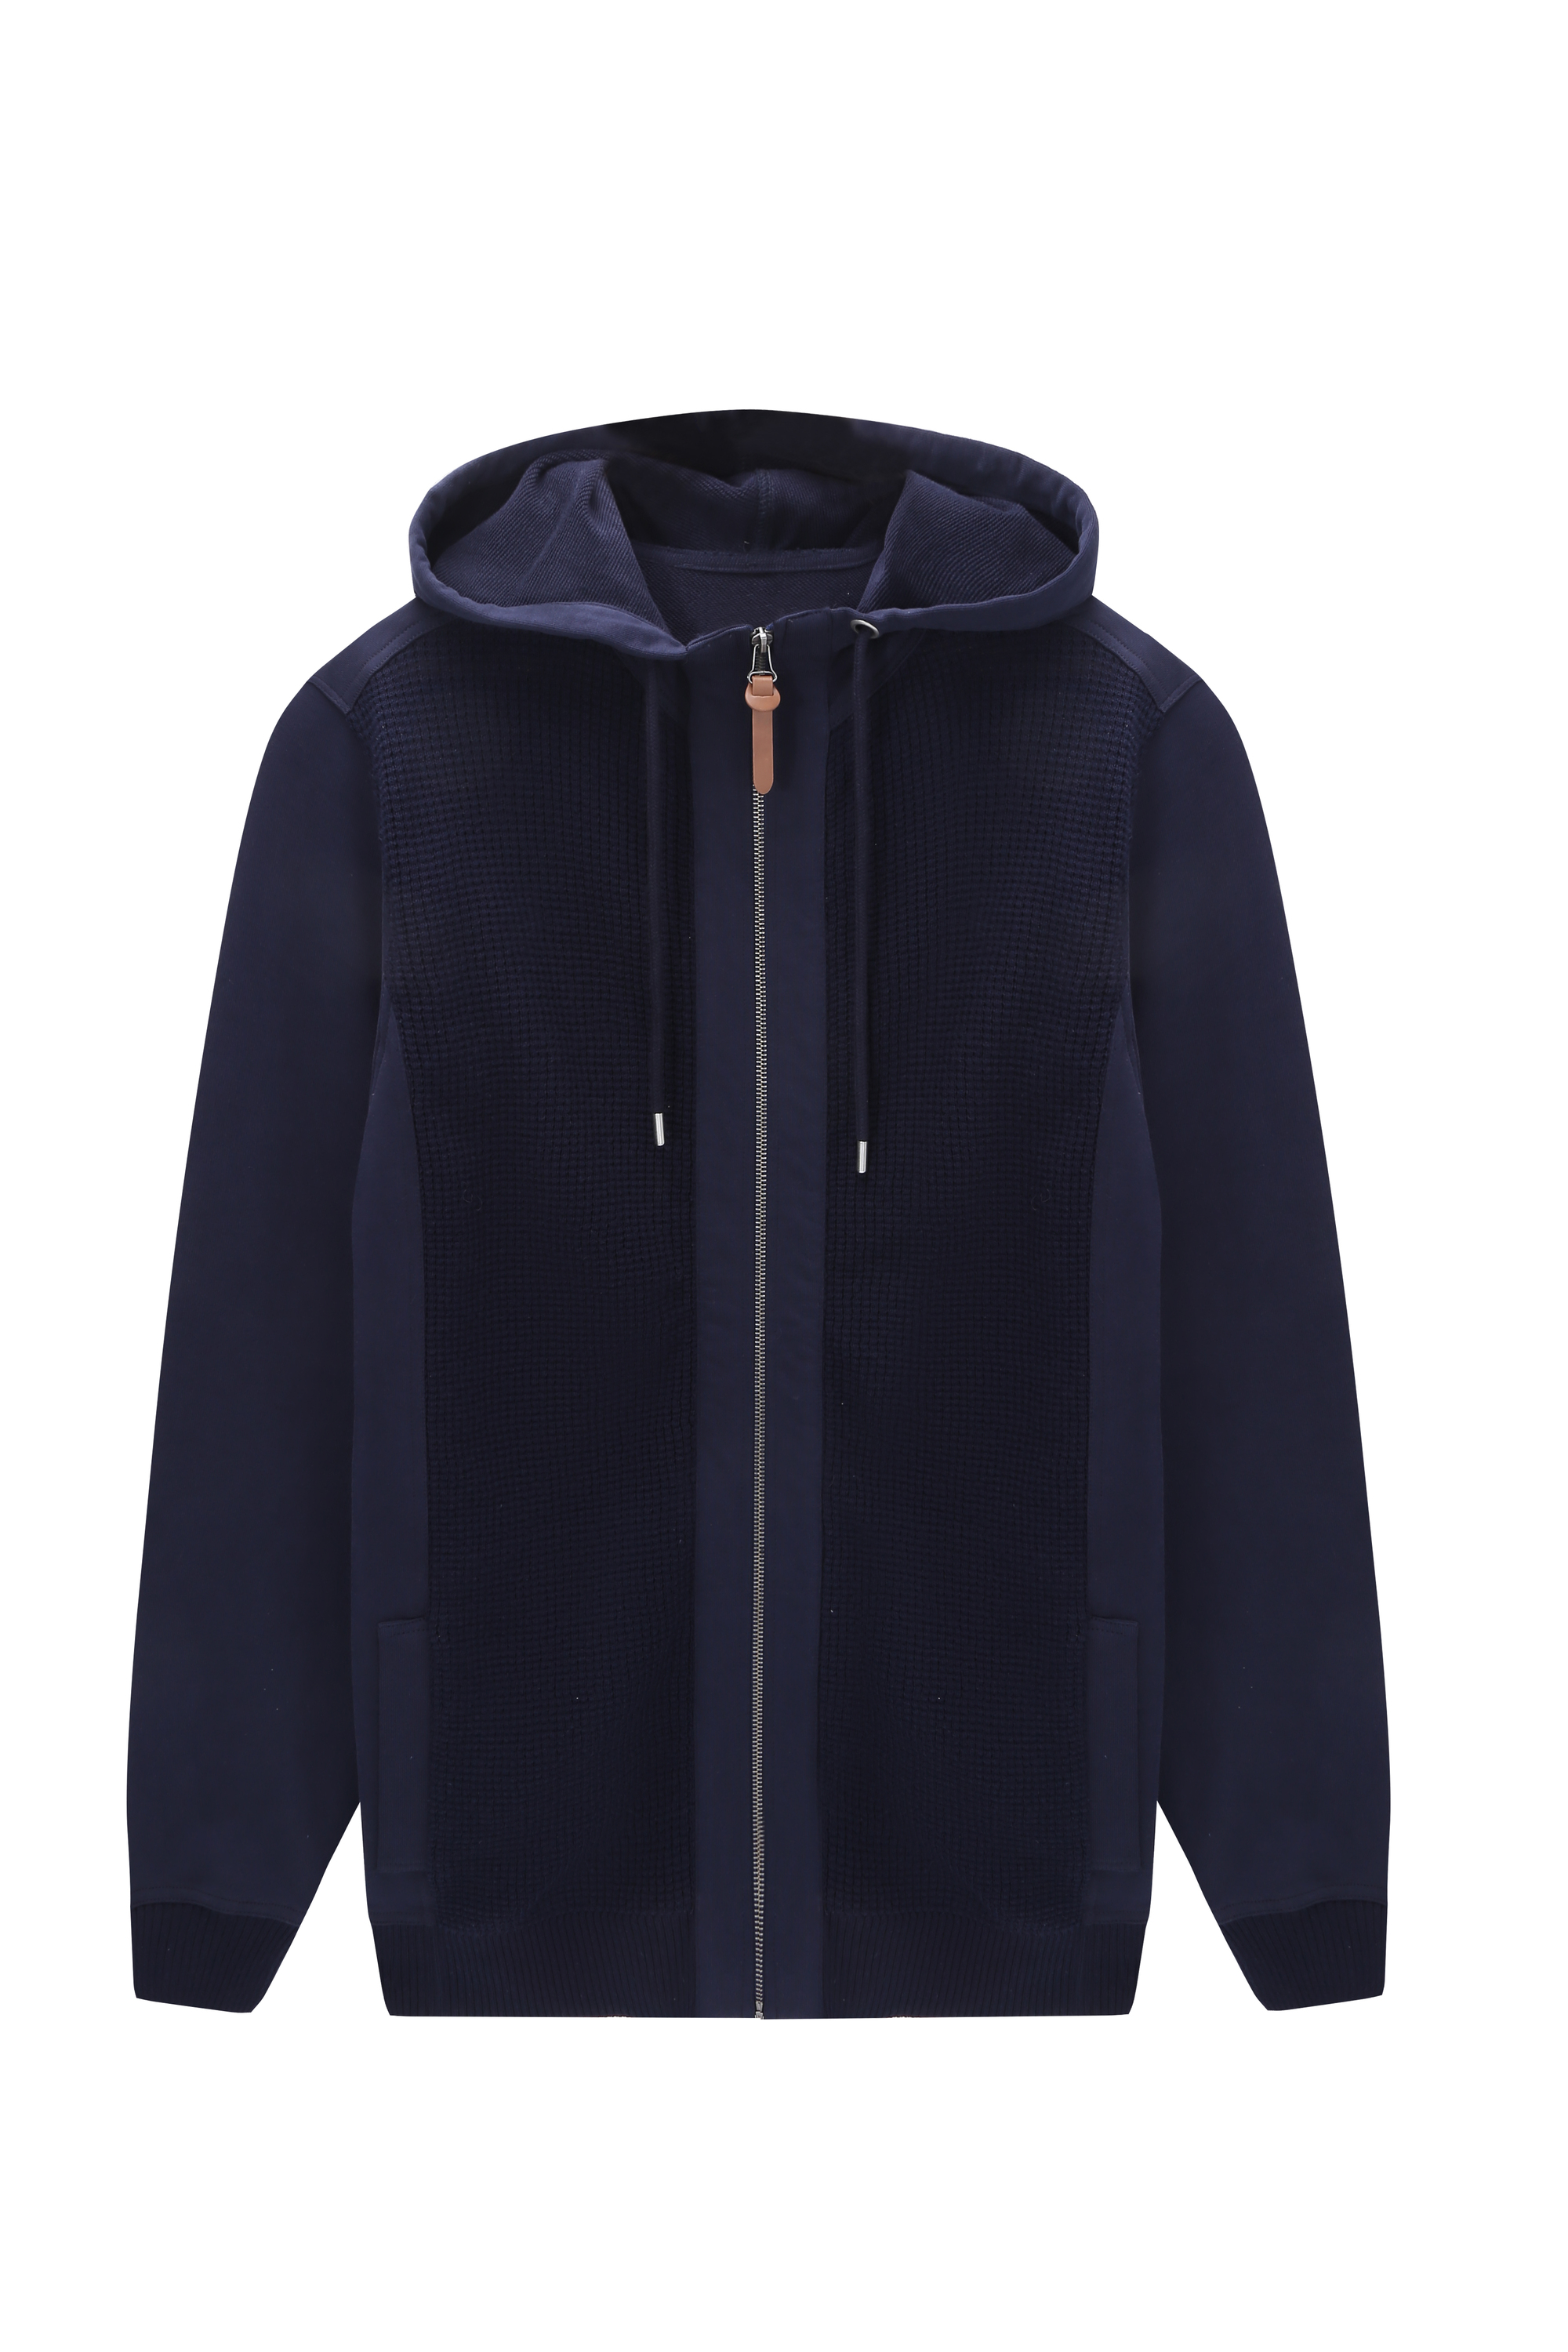 Men's Casual Slim Fit Hoodie Zip-Up Jacket